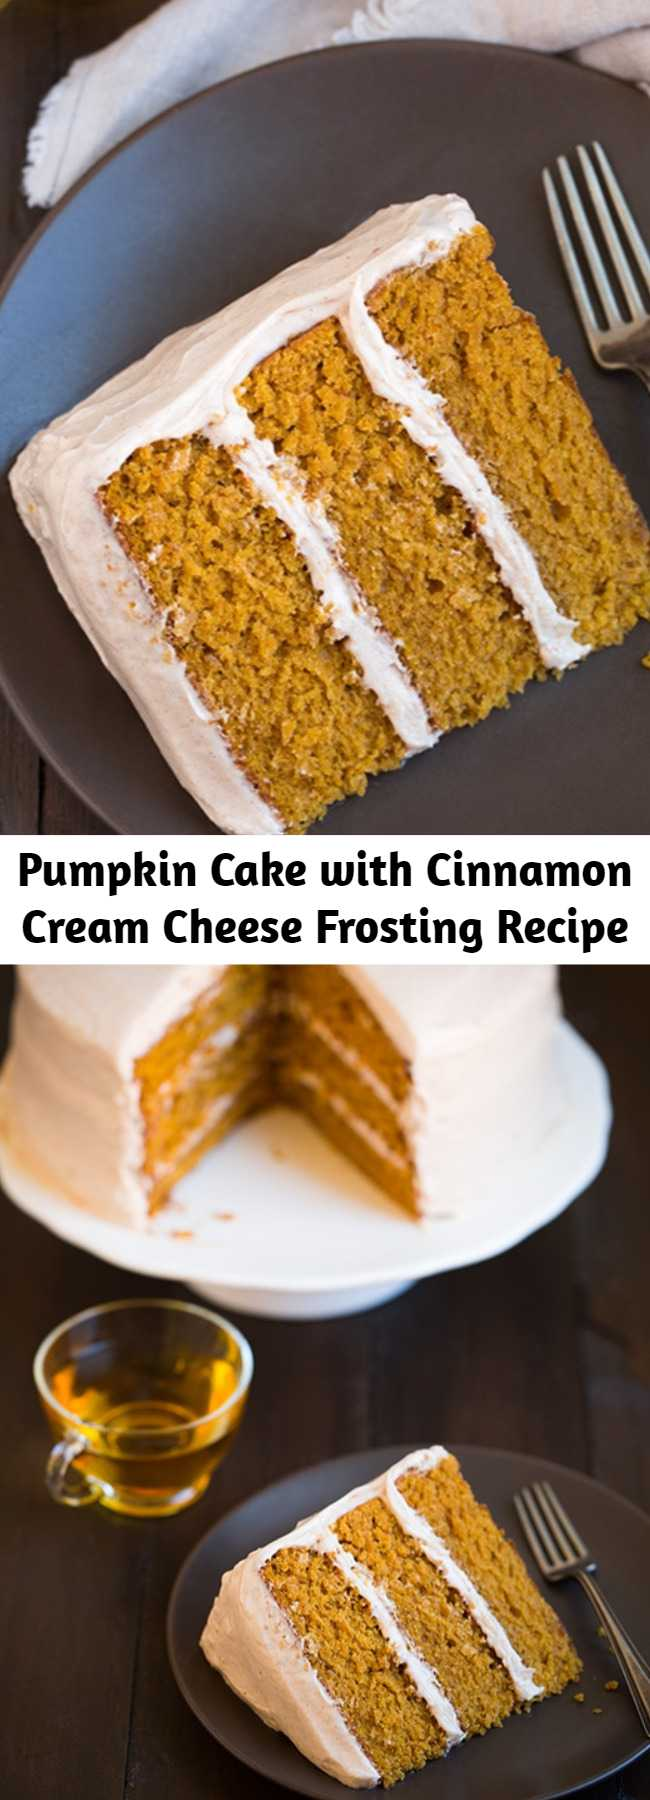 Pumpkin Cake with Cinnamon Cream Cheese Frosting Recipe - The tastiest pumpkin cake! It's soft and moist with just the right amount of pumpkin and spice, and it's finished with the best frosting! This is one of my favorites! Melt-in-your-mouth delicious!!